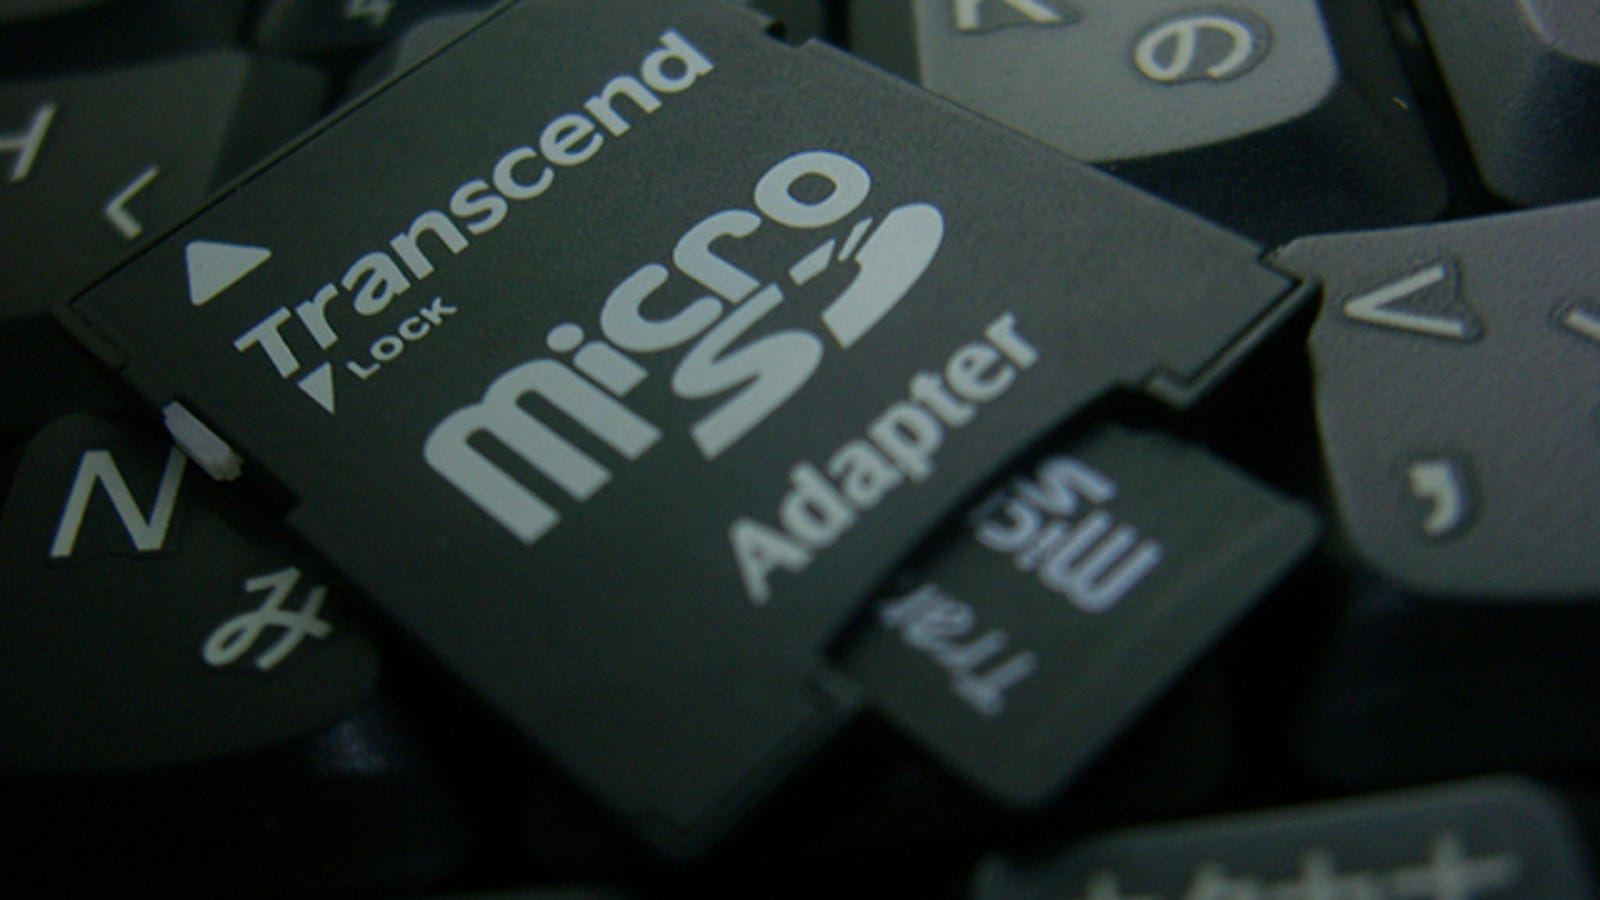 Android KitKat Blocks Some Access to Micro SD Cards